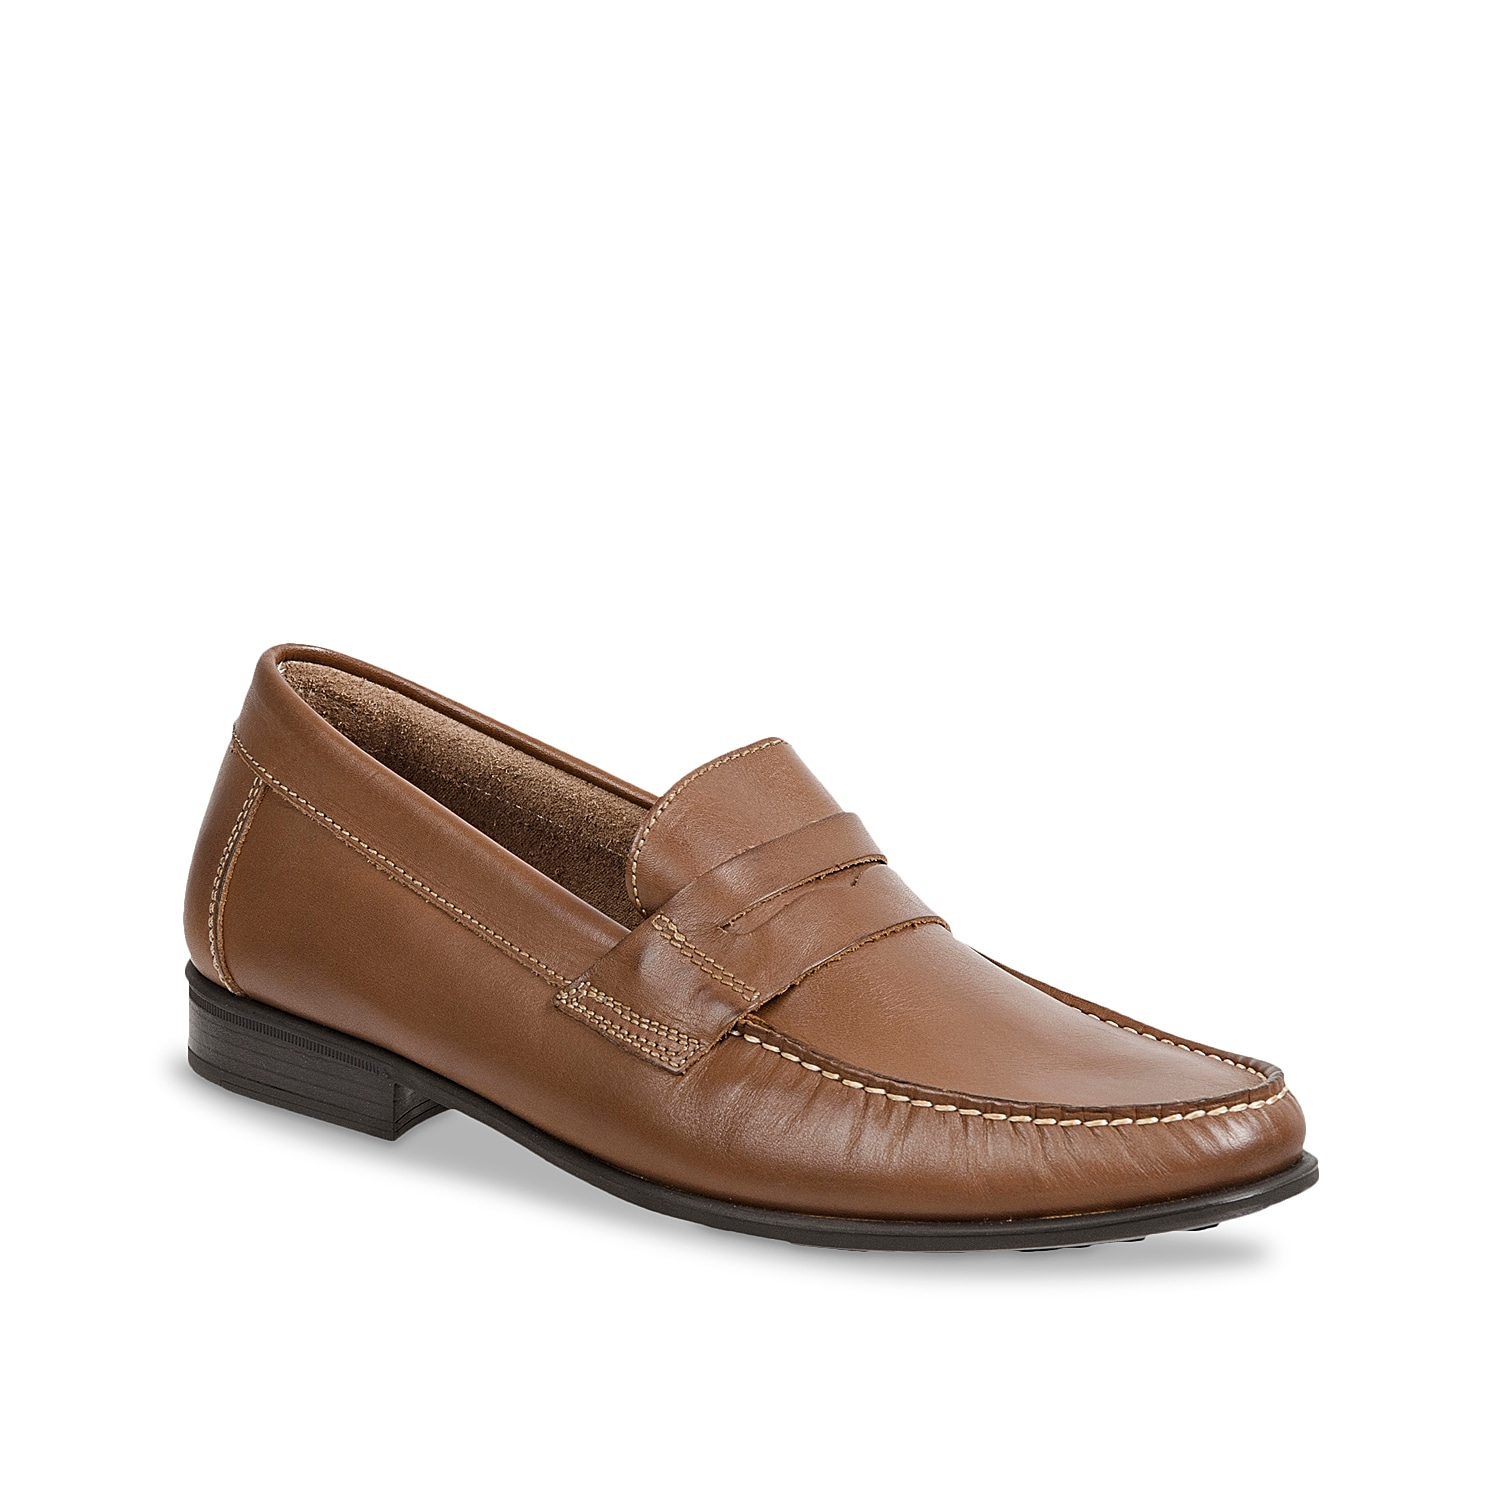 Pull off a handsome look with the Alvin loafer from Sandro Moscoloni. Comprising durable leather upper, this slip-on has a classy keeper slot and impressive moc stitched toe design.